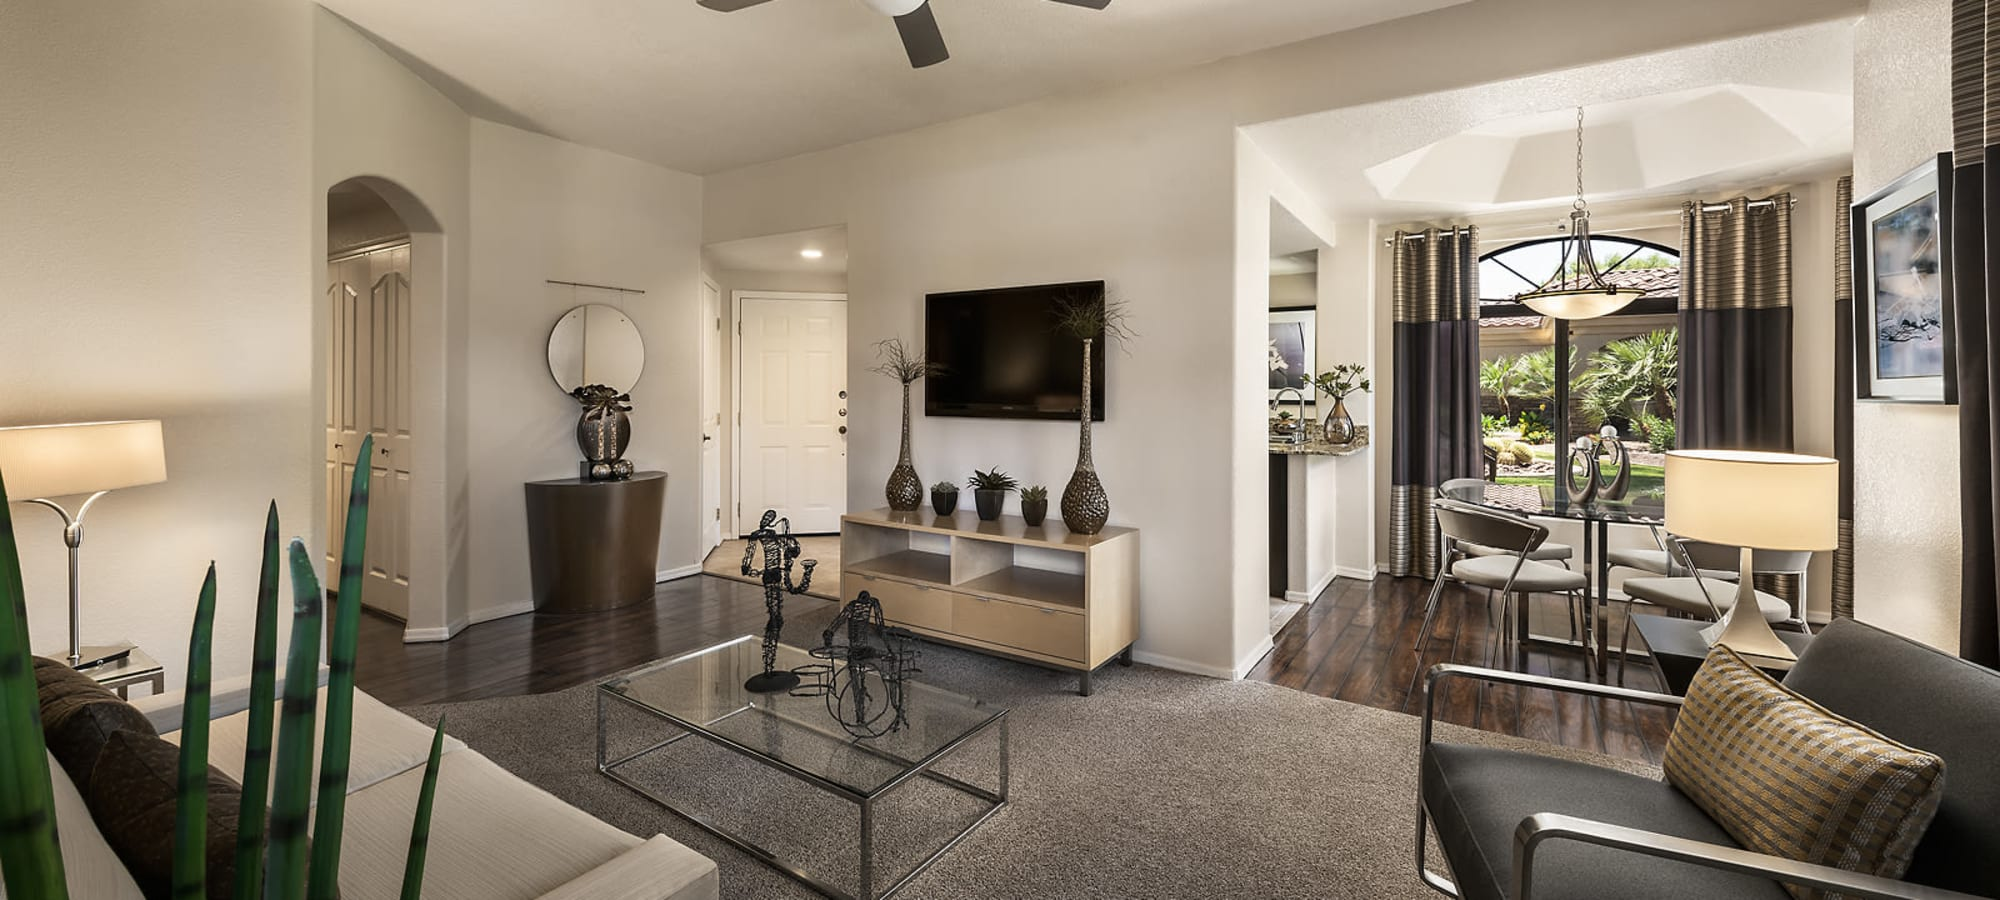 Open floor plan living room at San Cervantes in Chandler, Arizona